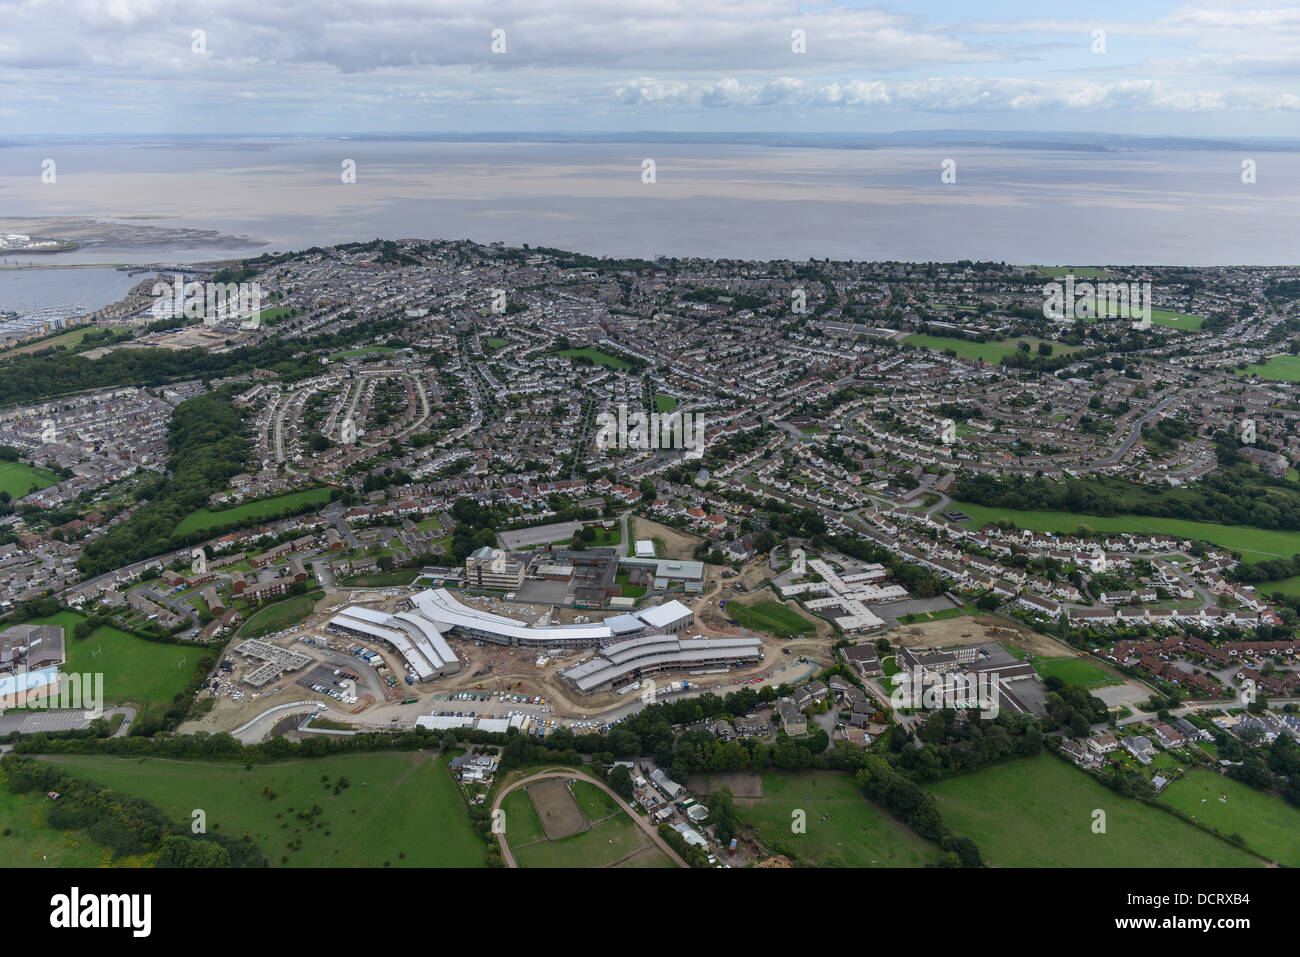 Aerial photograph of Penarth - Stock Image